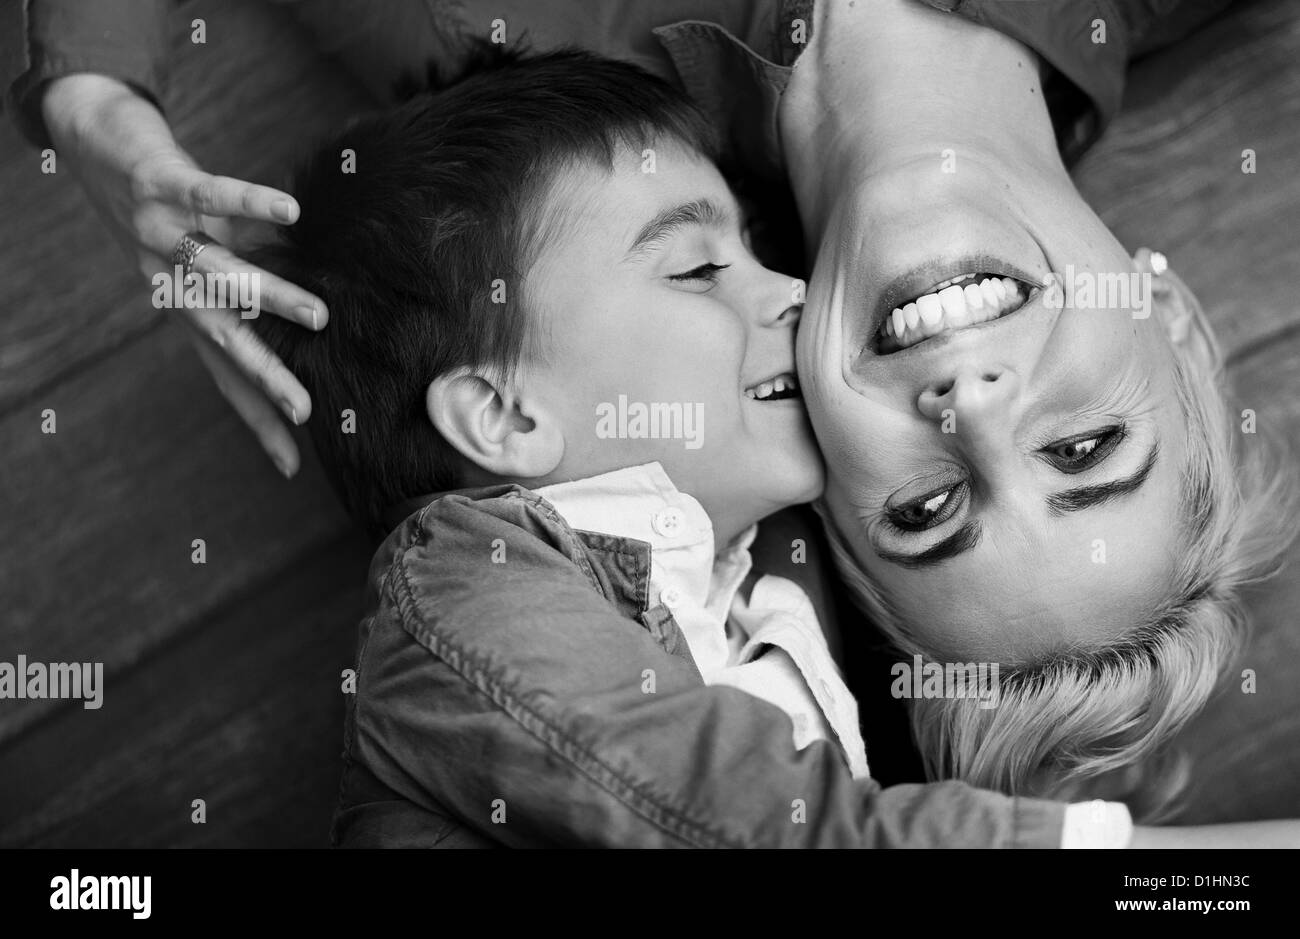 little boy and girl kissing stock photos & little boy and girl